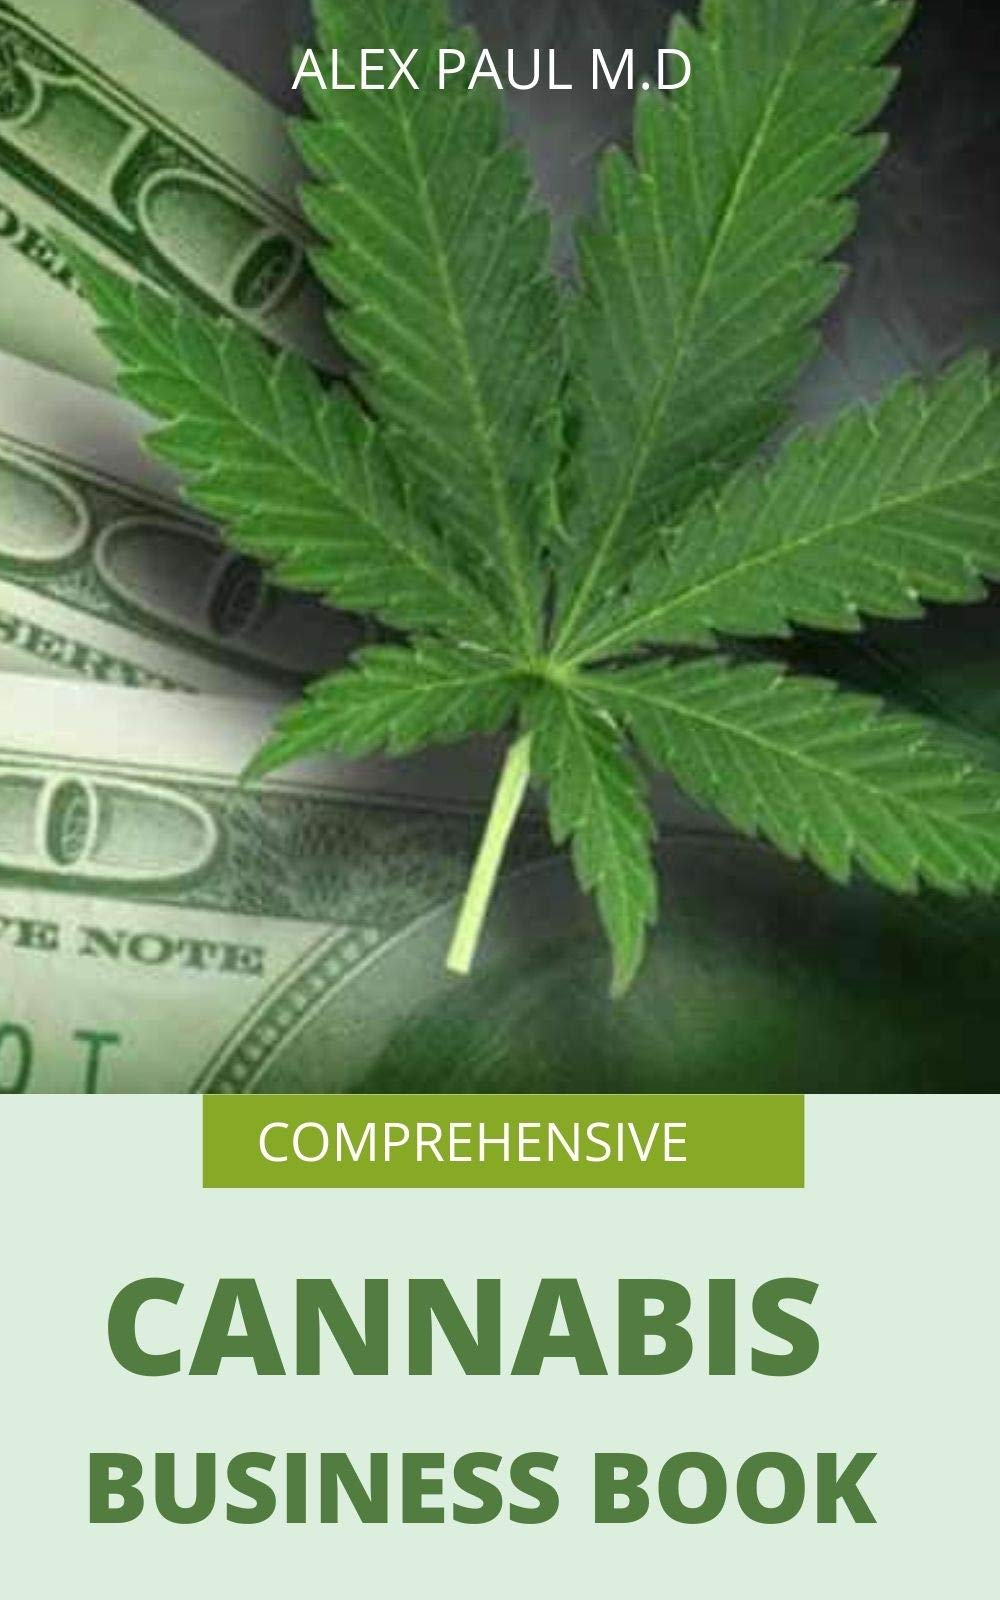 COMPREHENSIVE CANNABIS BUSINESS BOOK: PREFECT GUIDE ON HOW TO GROW CANNABIS INDOOR OR OUTDOOR PLUS WAYS TO SUCCEED IN ITS BUSINESS